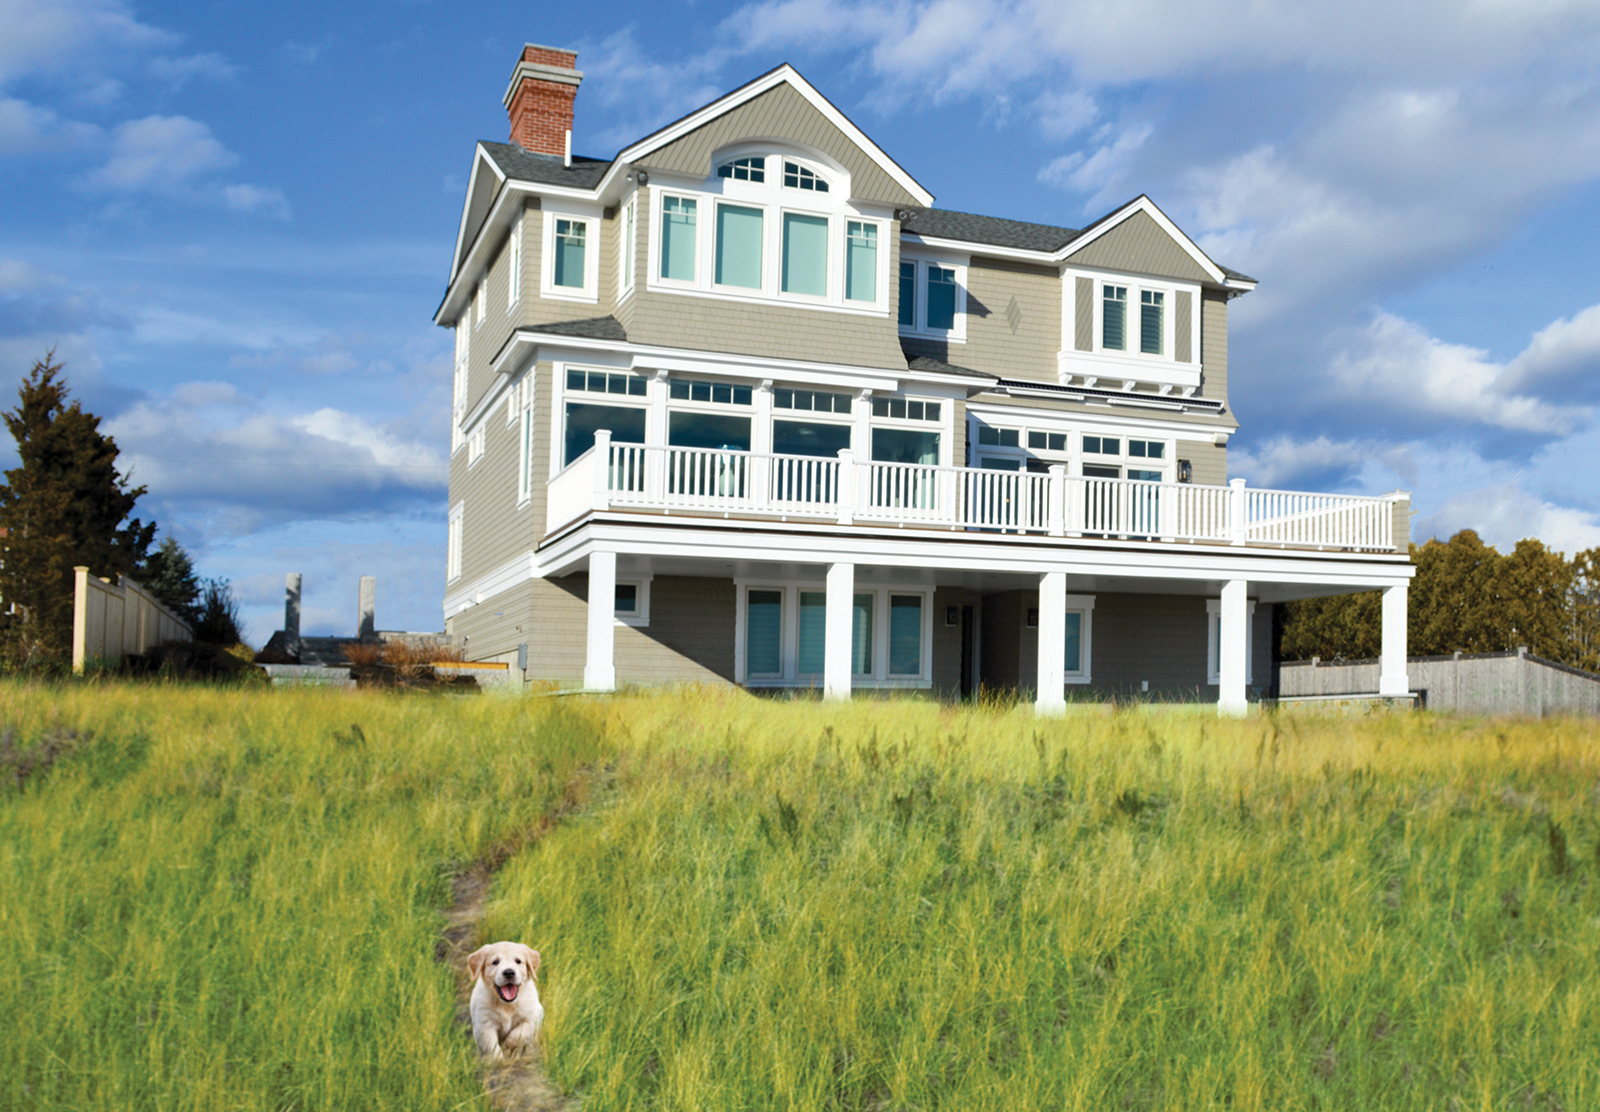 Exterior beachside view at Pine Point, Custom Home Construction in Southern Maine